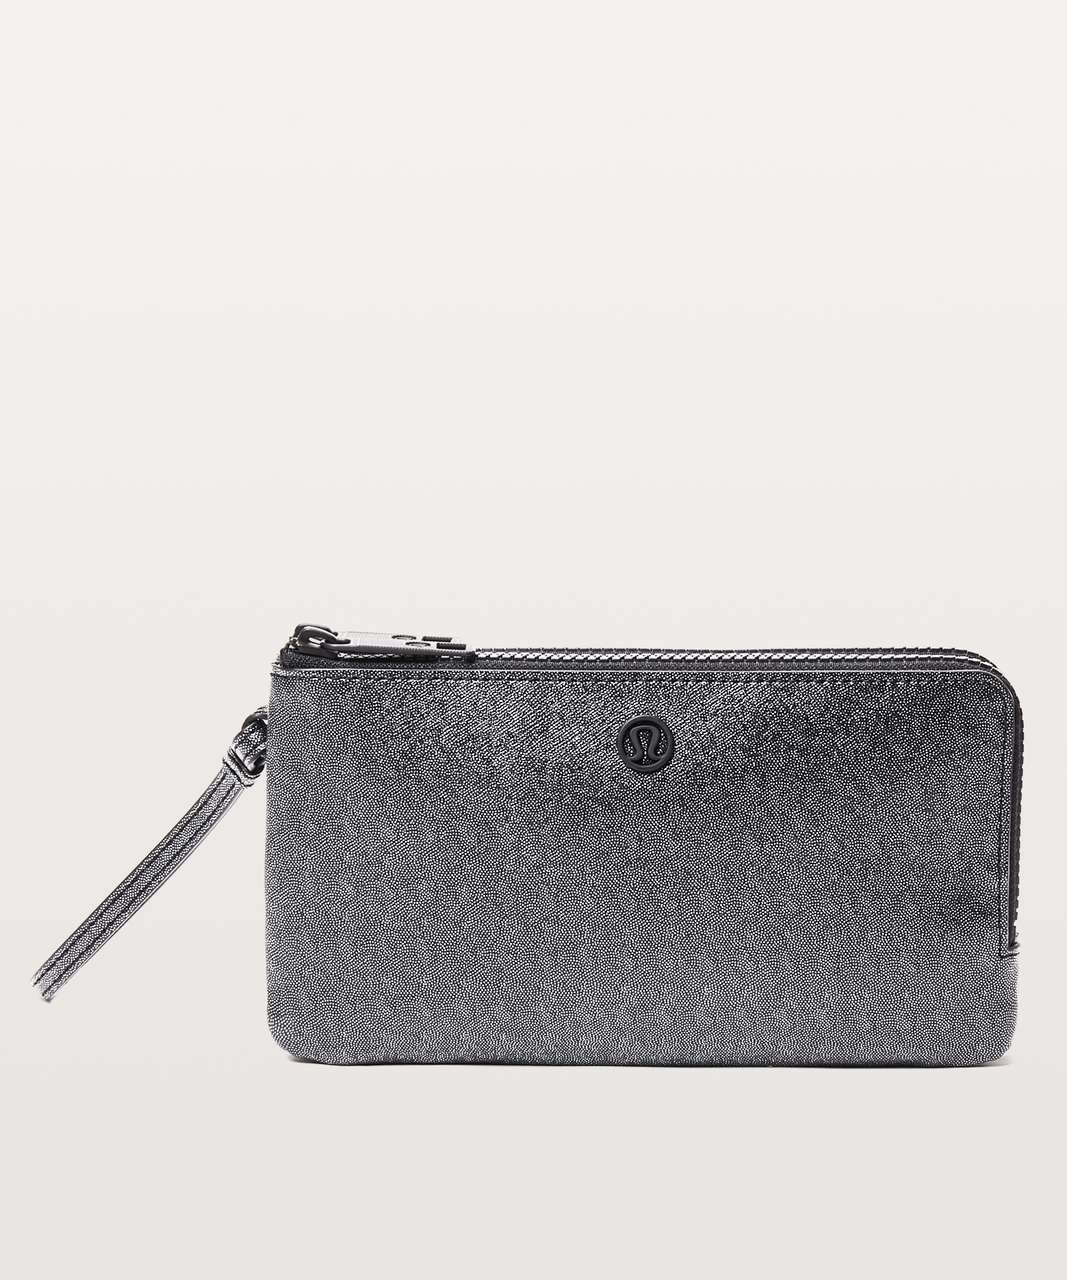 Lululemon Double Up Pouch - Silver